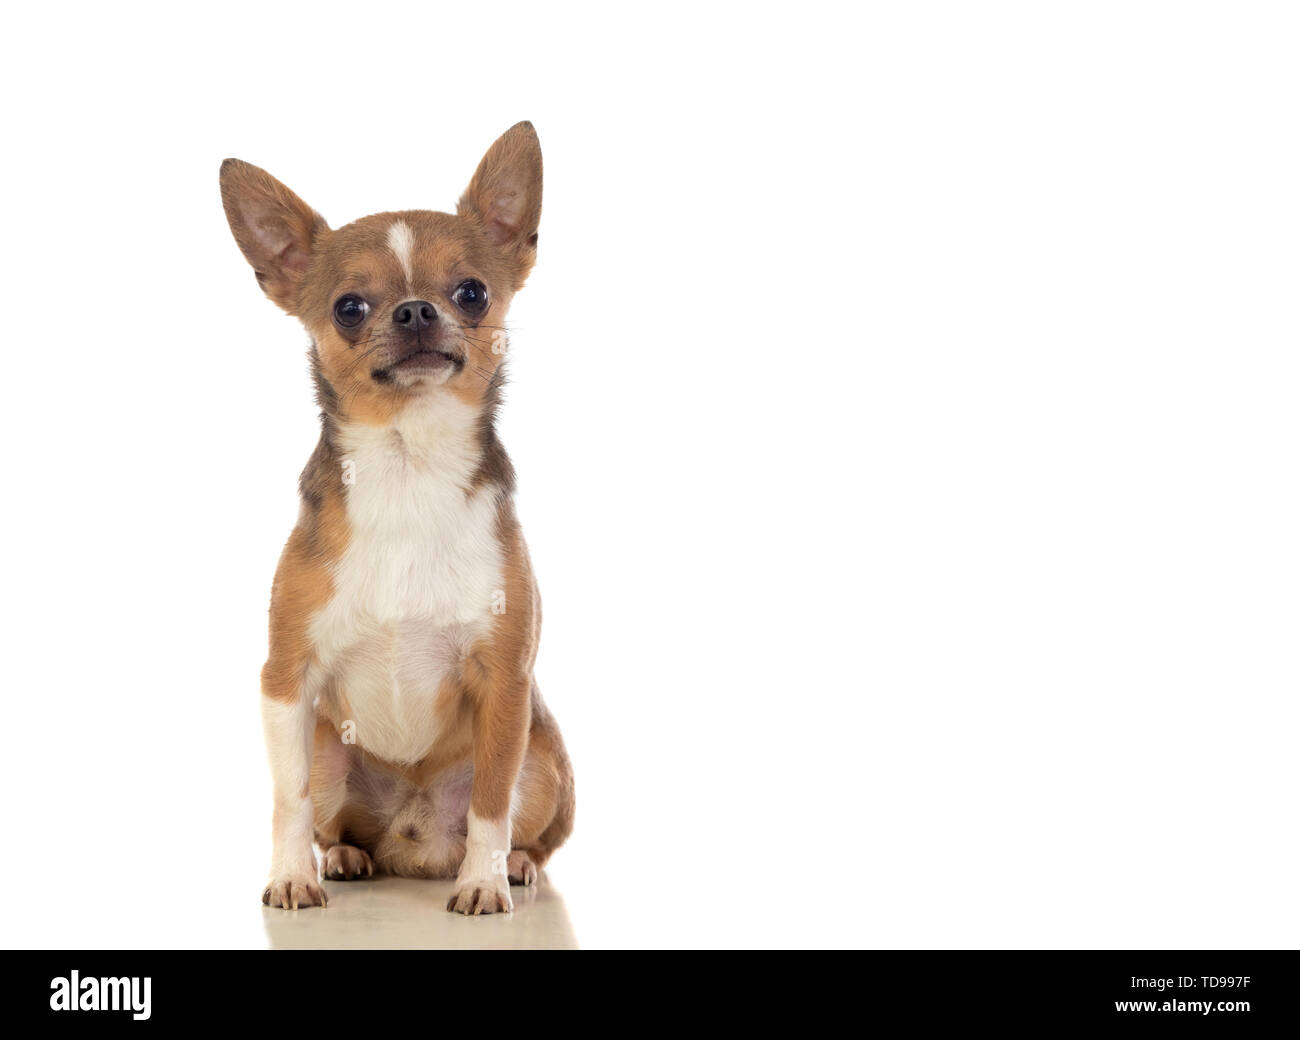 Funny brown Chihuahua with big ears isolated on a white background - Stock Image